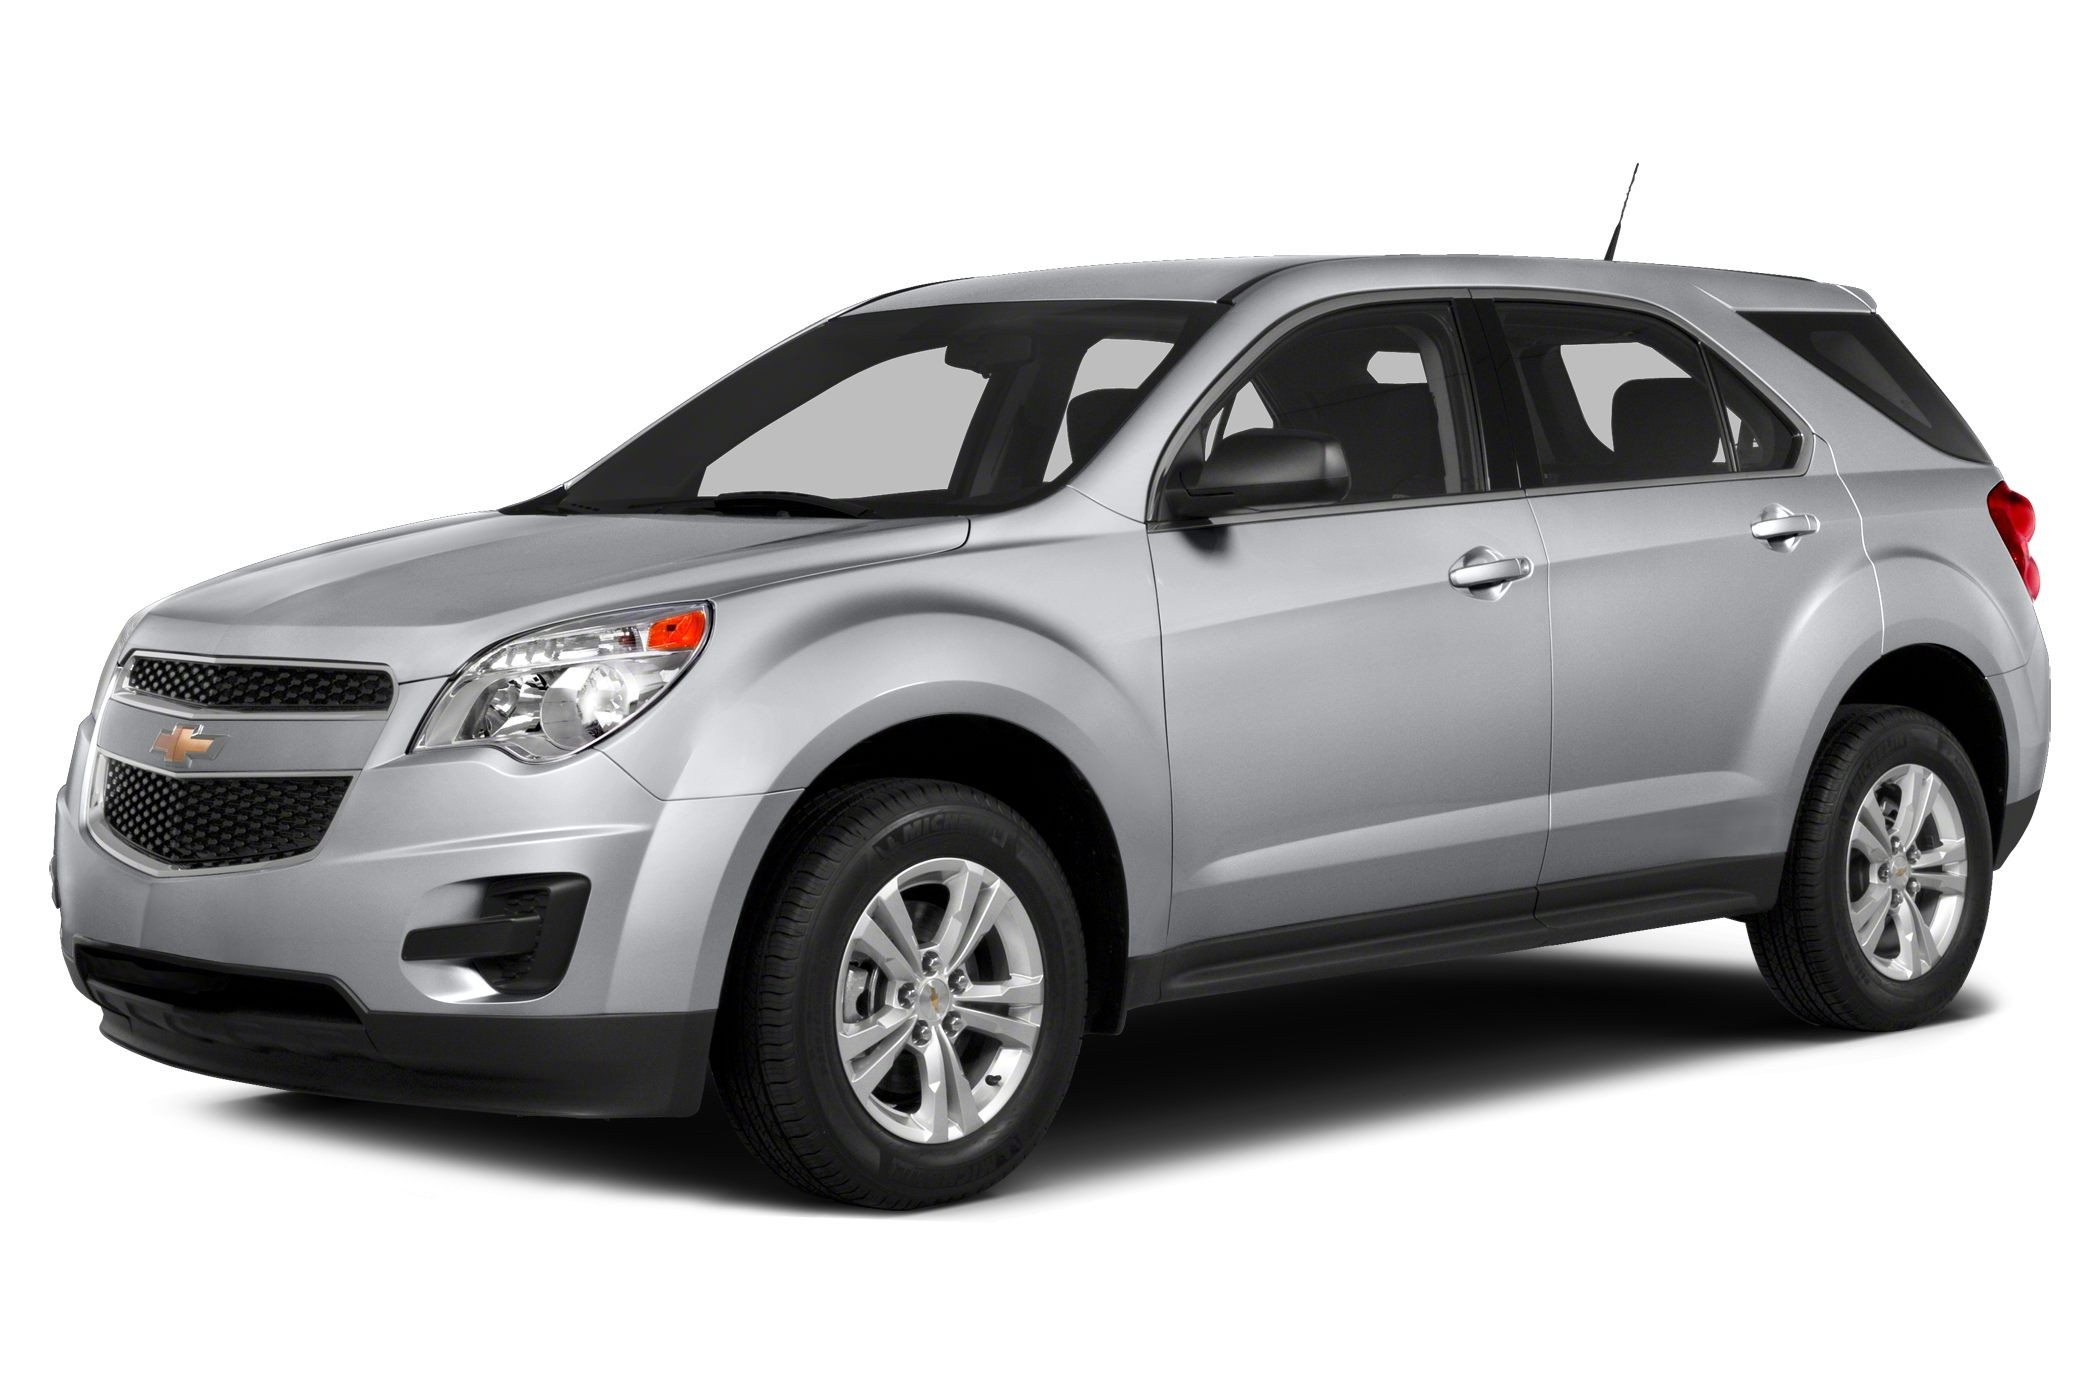 2006 Chevy Equinox Engine Diagram 2013 Chevrolet Equinox Specs and Prices Of 2006 Chevy Equinox Engine Diagram